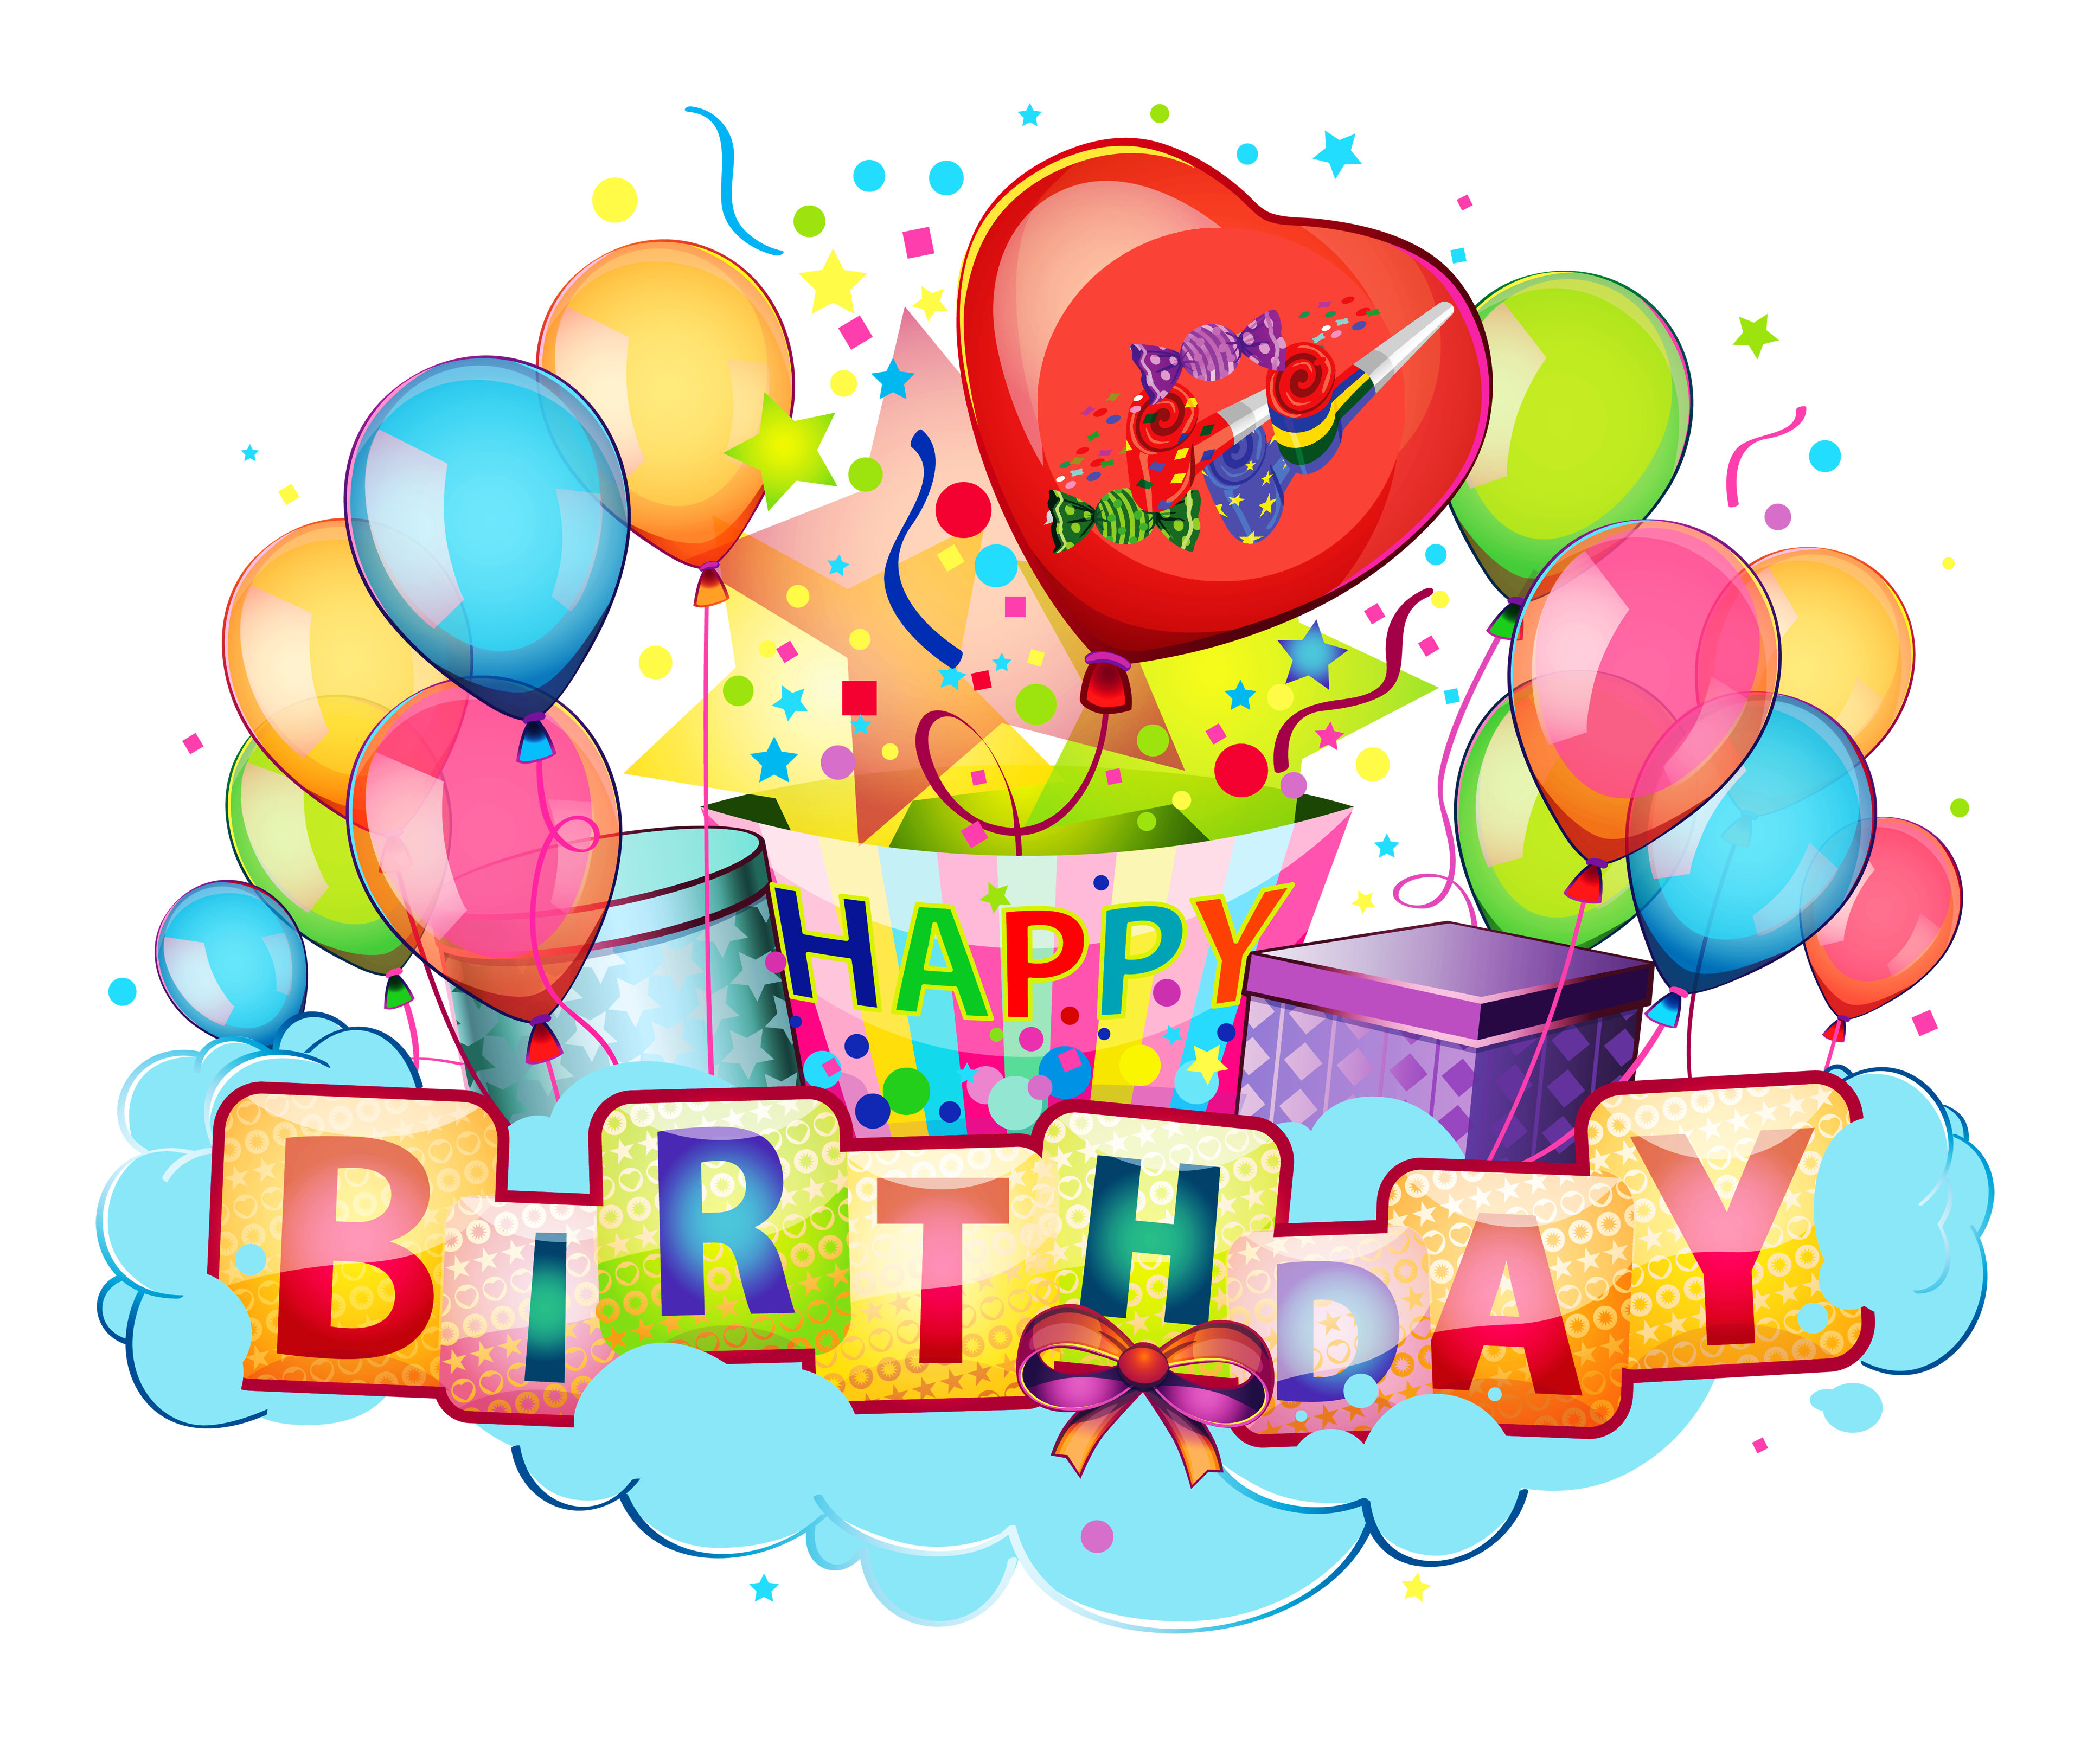 Couple clipart happy birthday. Wonderful poems that can